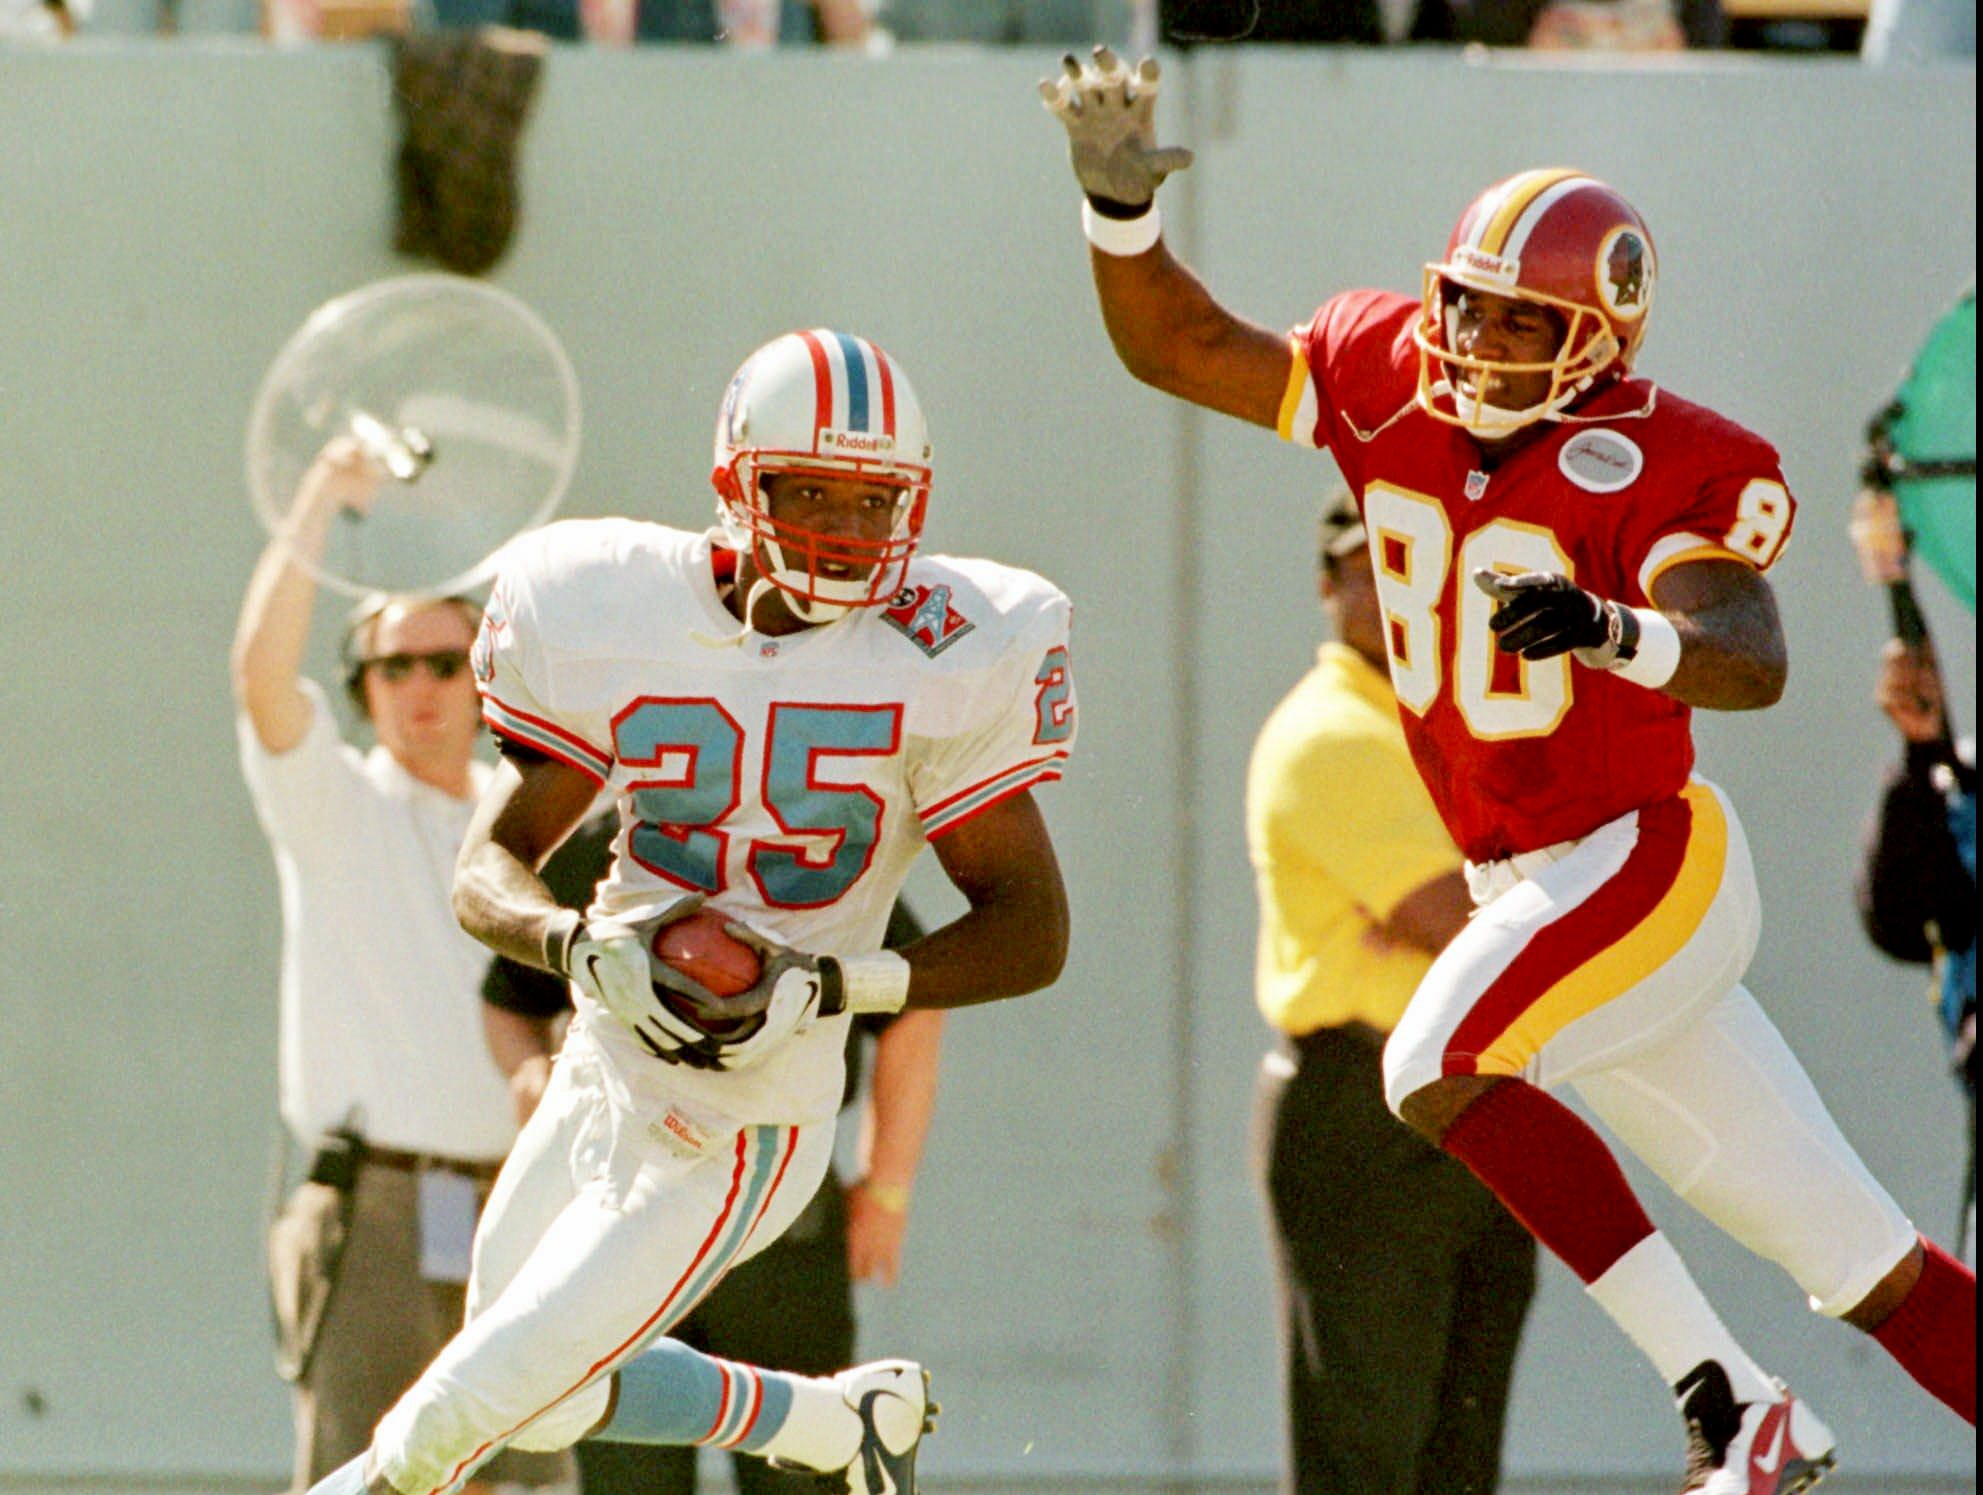 Tennessee Oilers' cornerback Denard Walker (25) runs after intercepting a pass intended for the Redskins' Alvin Harper (80) during the fourth quarter of the Oilers' 28-14 win Oct. 19, 1997 in Memphis. It was the first interception for the Oilers this season.